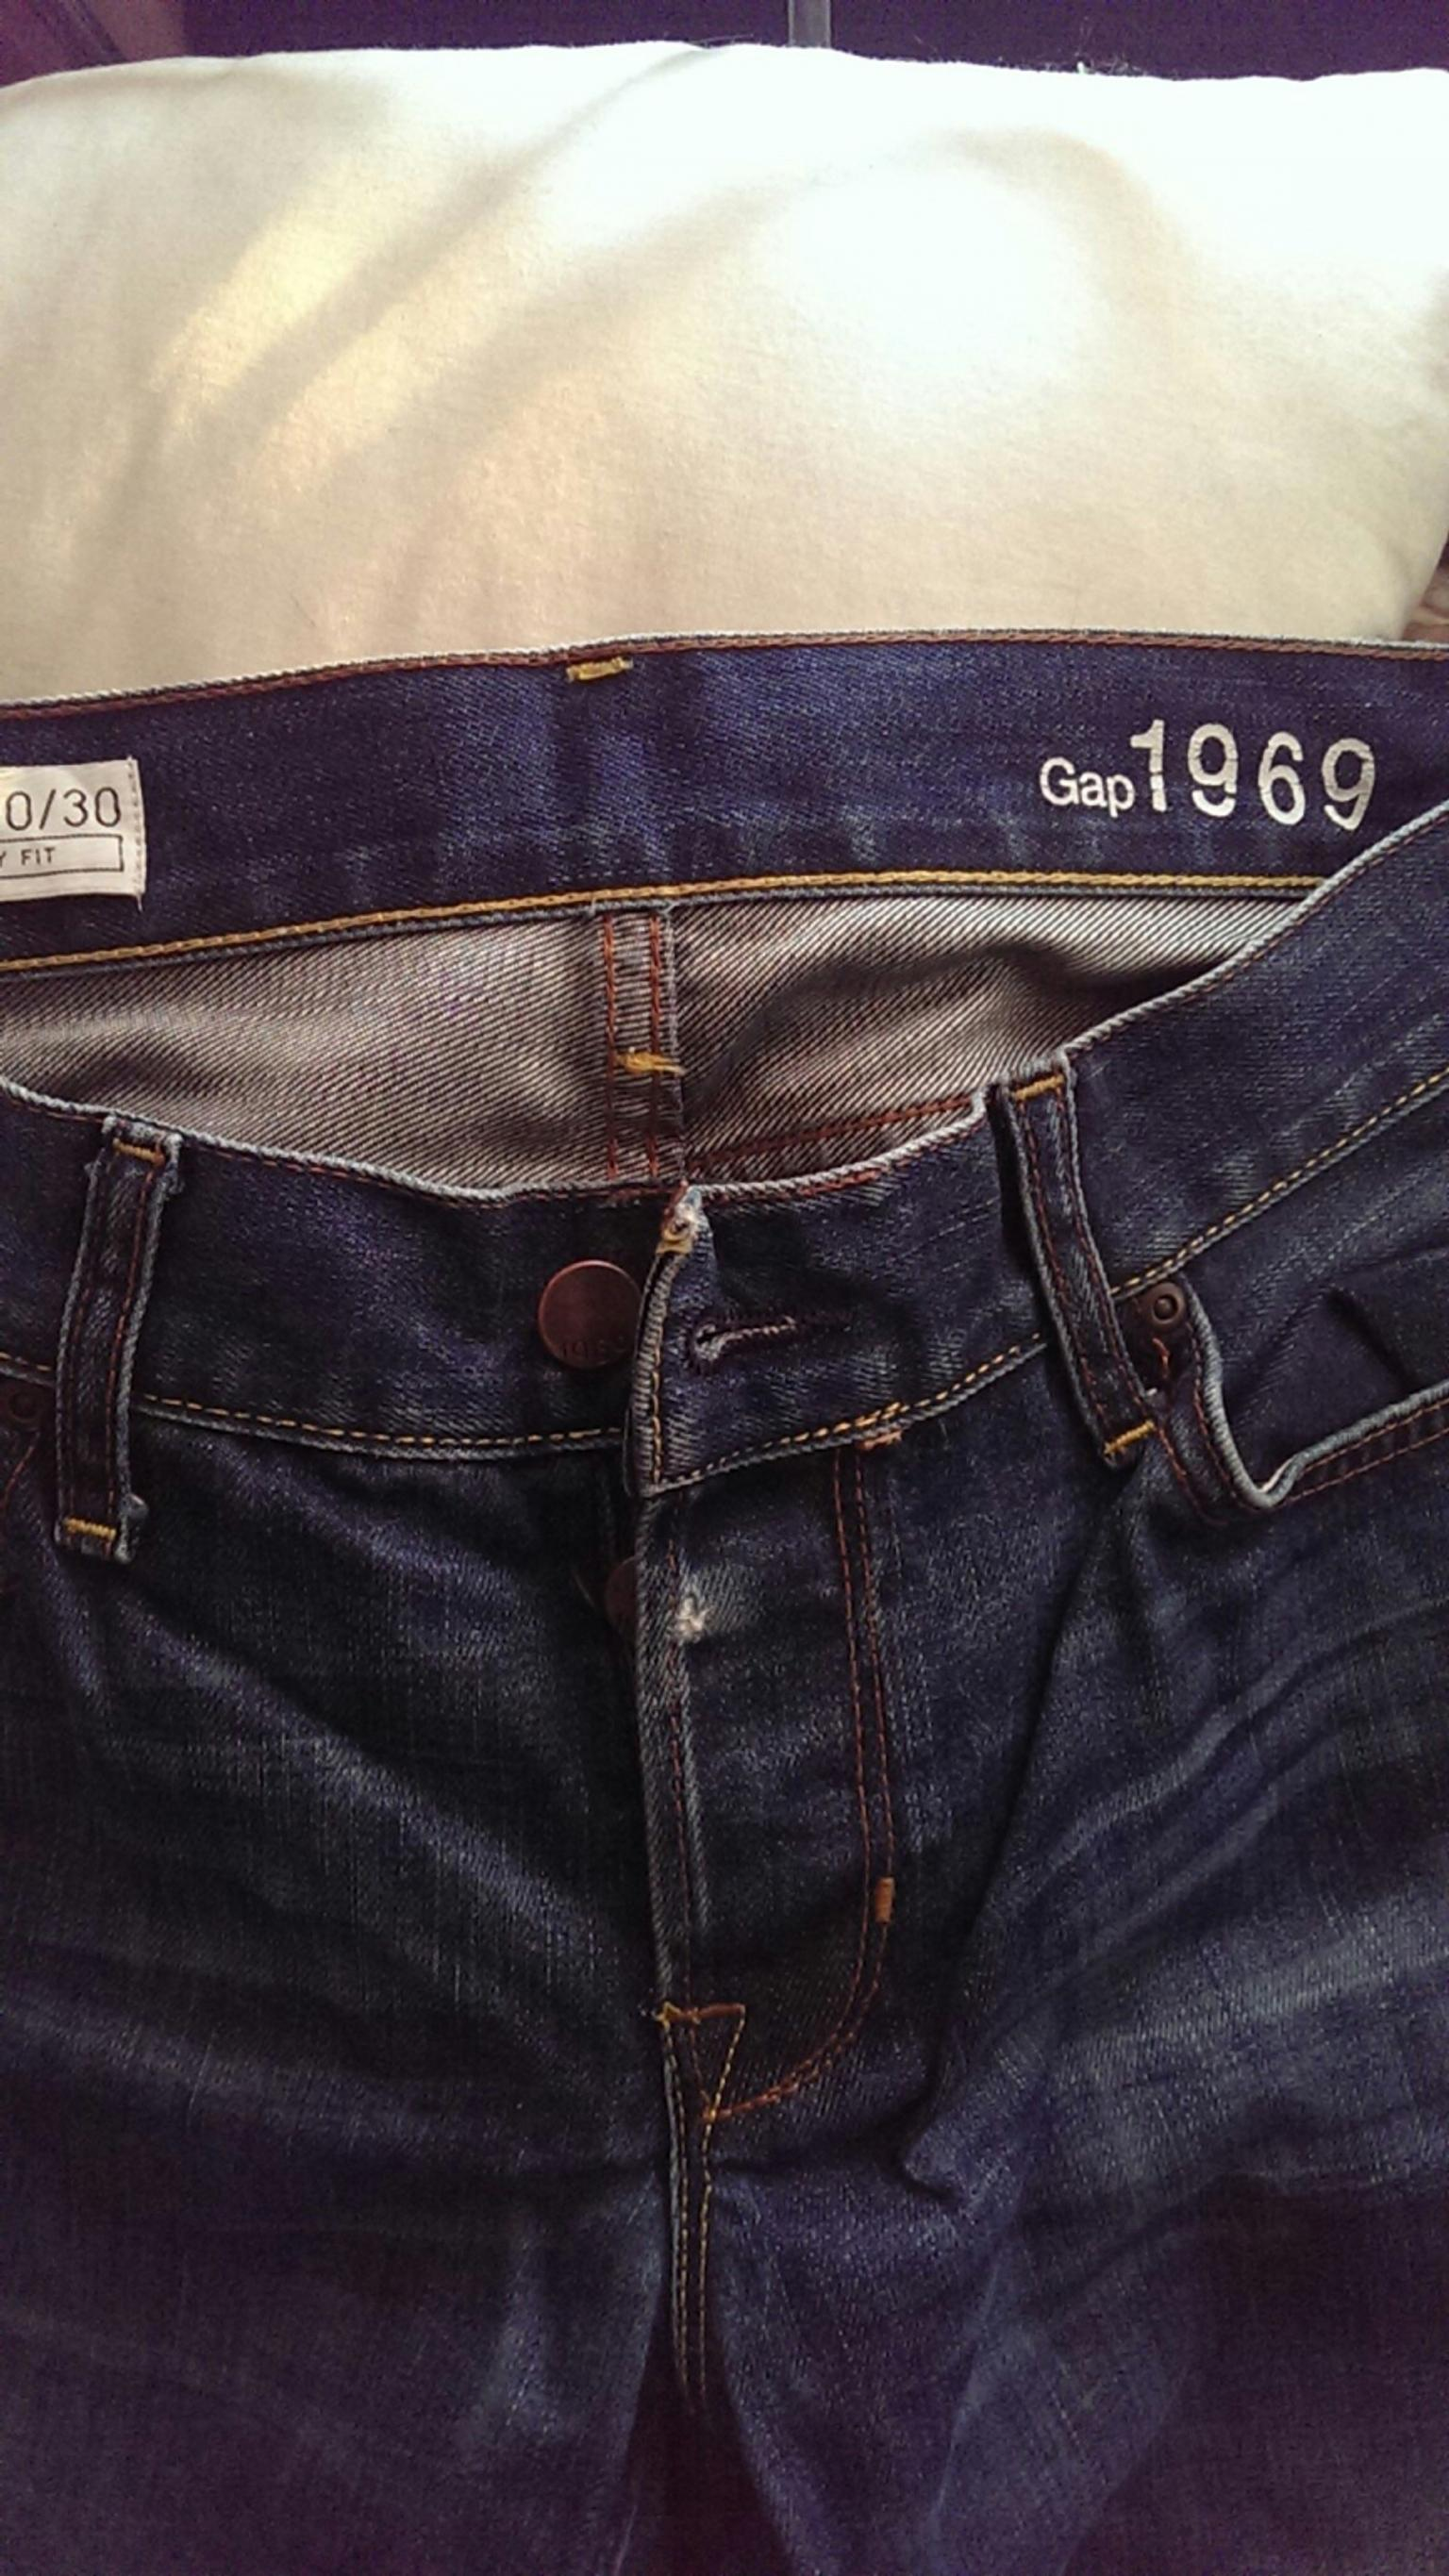 Gap 1969 Jeans In Sw17 Wandsworth For 7 00 For Sale Shpock